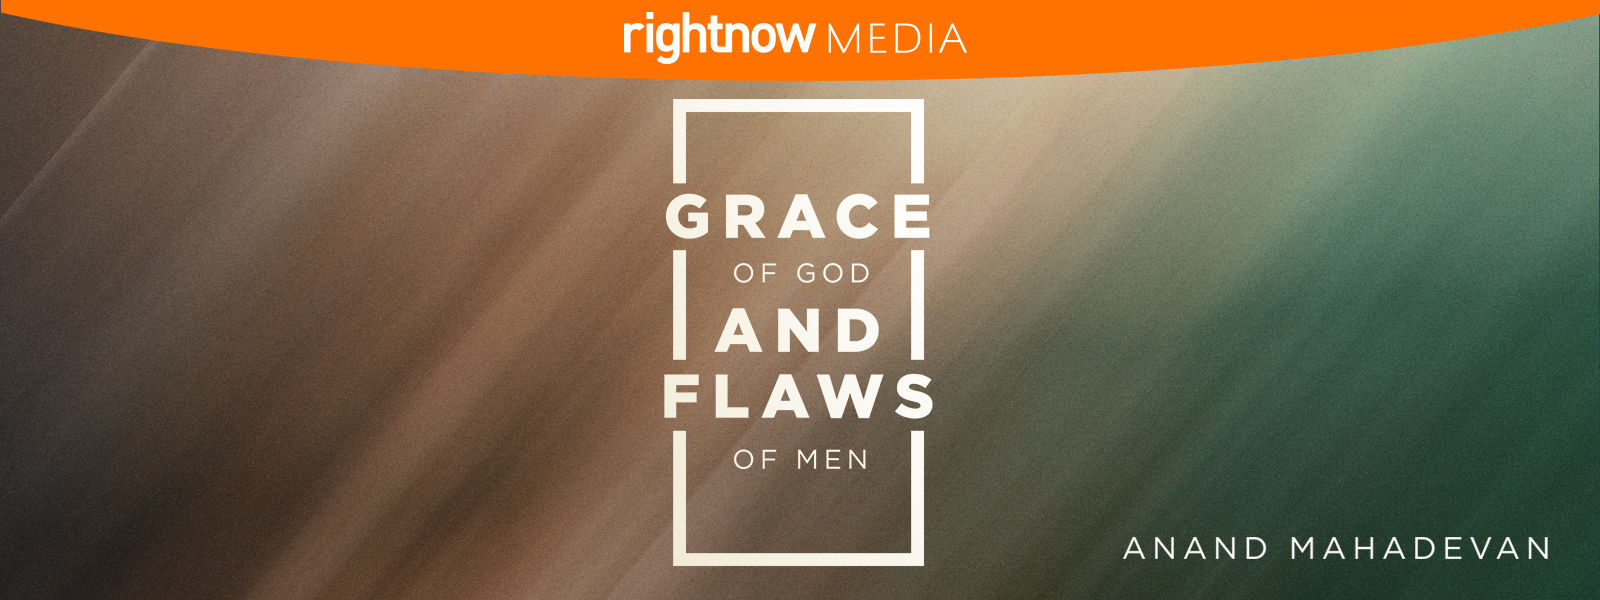 Grace of God and Flaws of Men